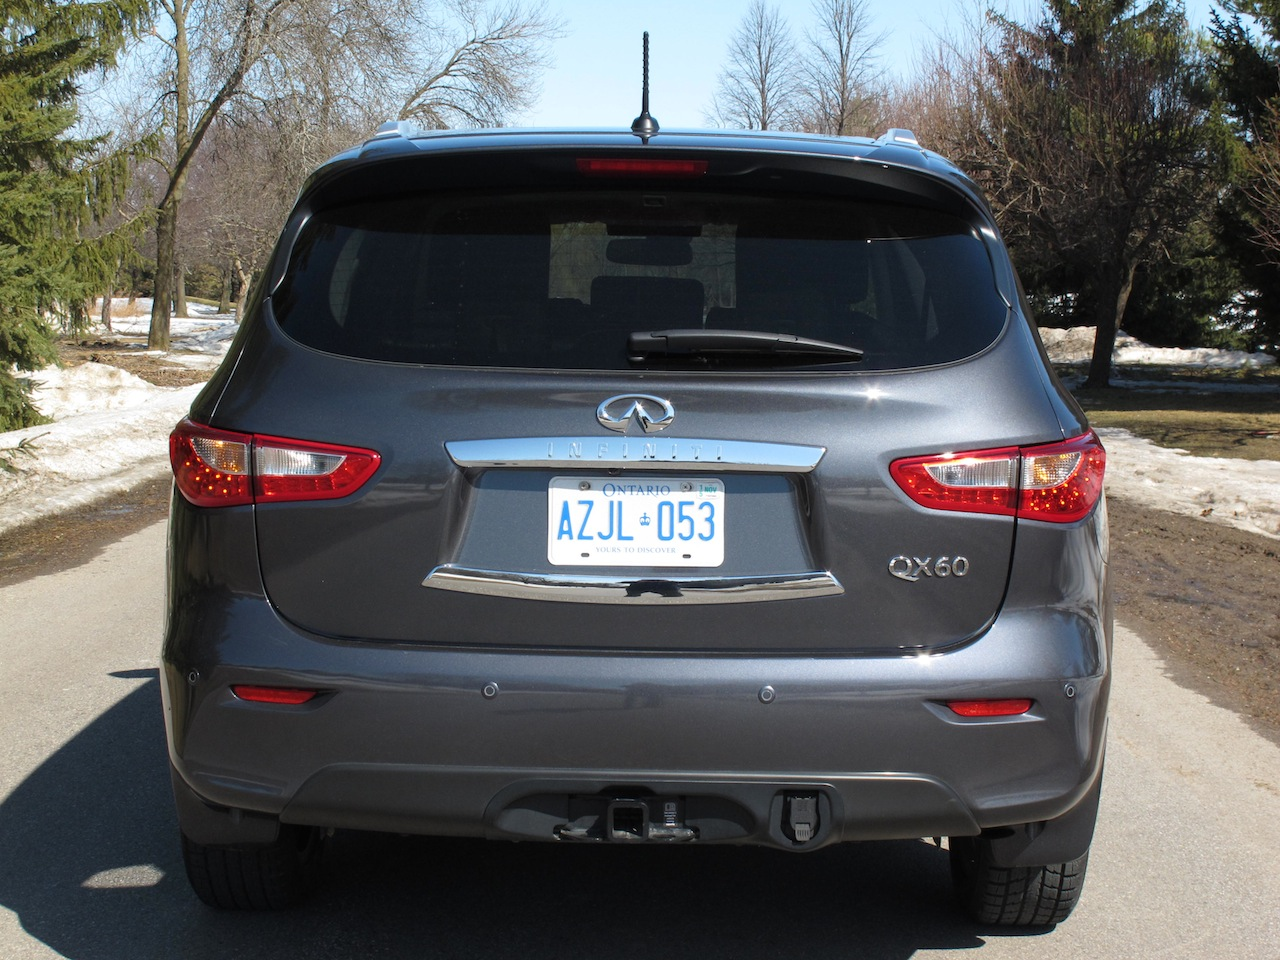 2014 Infiniti Qx60 Hybrid Review Cars Photos Test